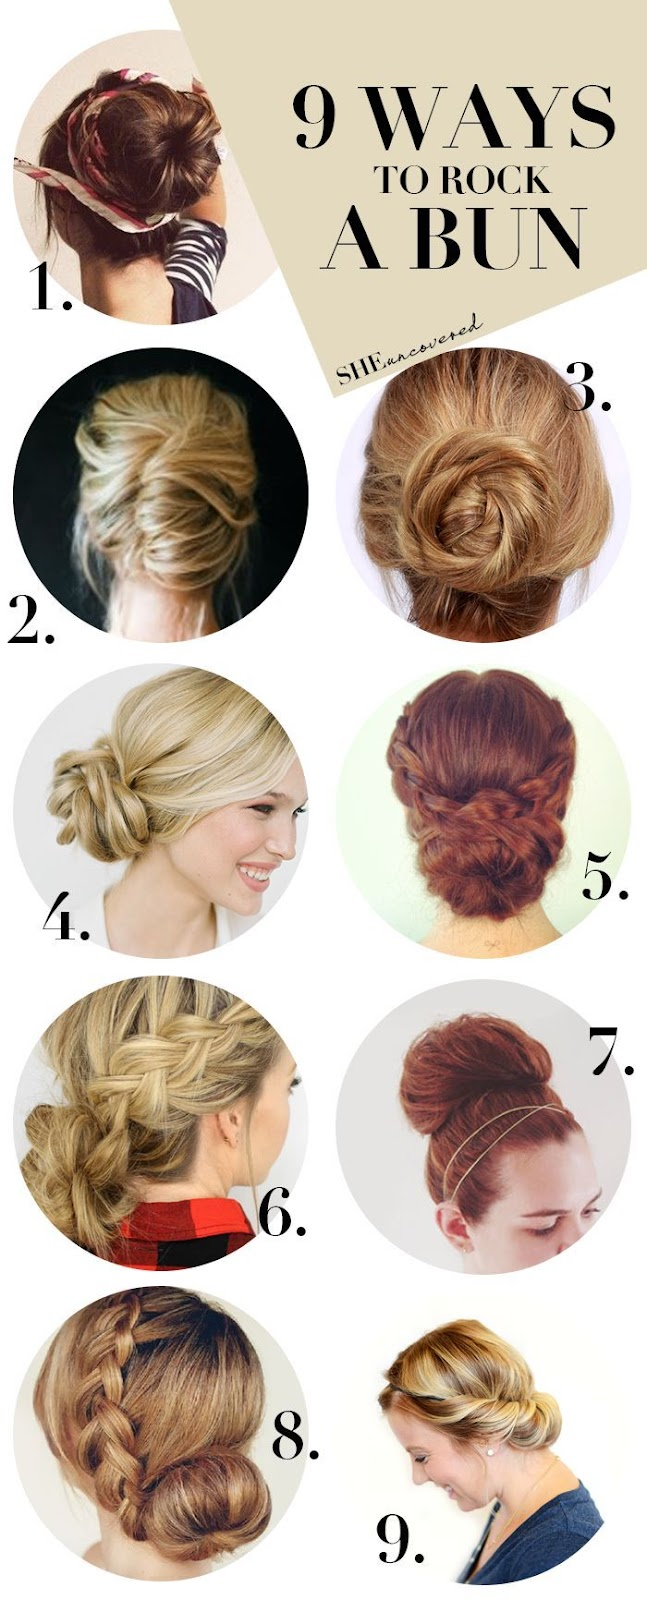 how to make your bun look bigger without a sock